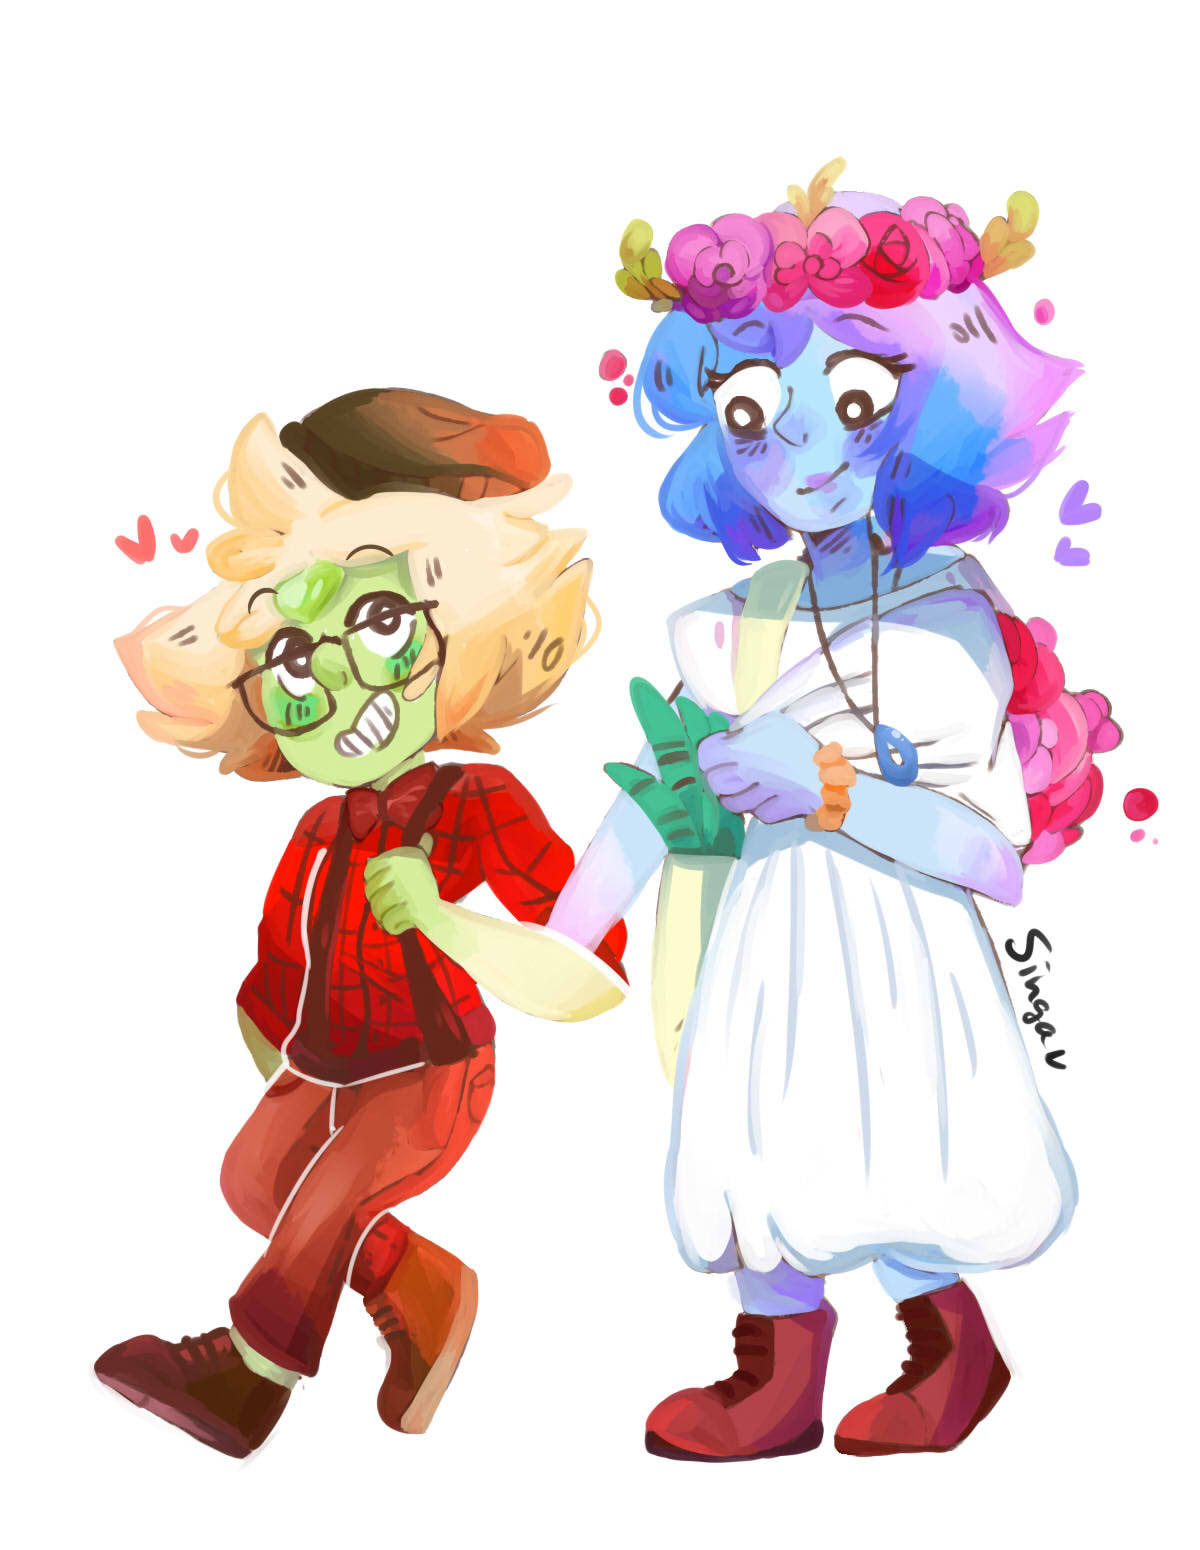 Okay i finally finished my flowershop AU! Imagine peridot and lapis being two hipsters managing their own flowershop: Lapis is the instagram flower girl who picks out the flowers and post cute...